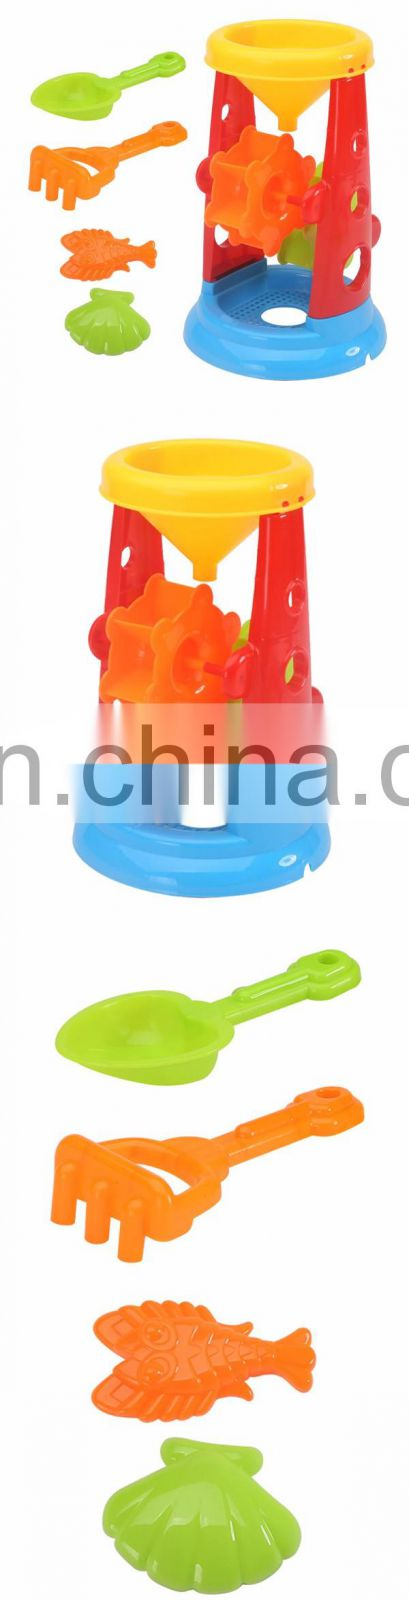 Plastic hourglass sand beach toy set for children